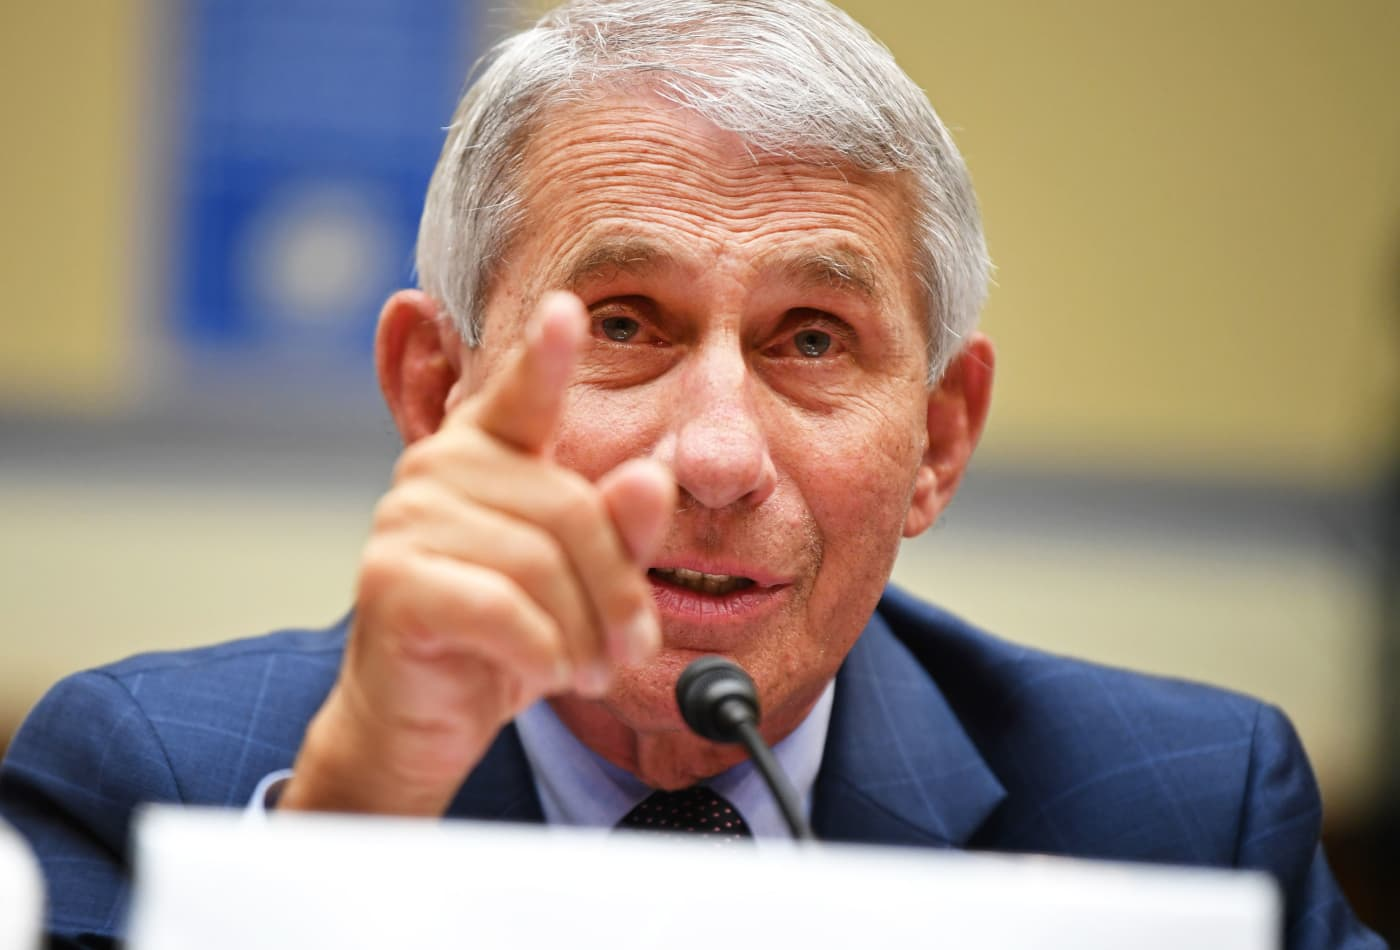 Dr. Fauci says coronavirus is so contagious, it won't likely ever disappear